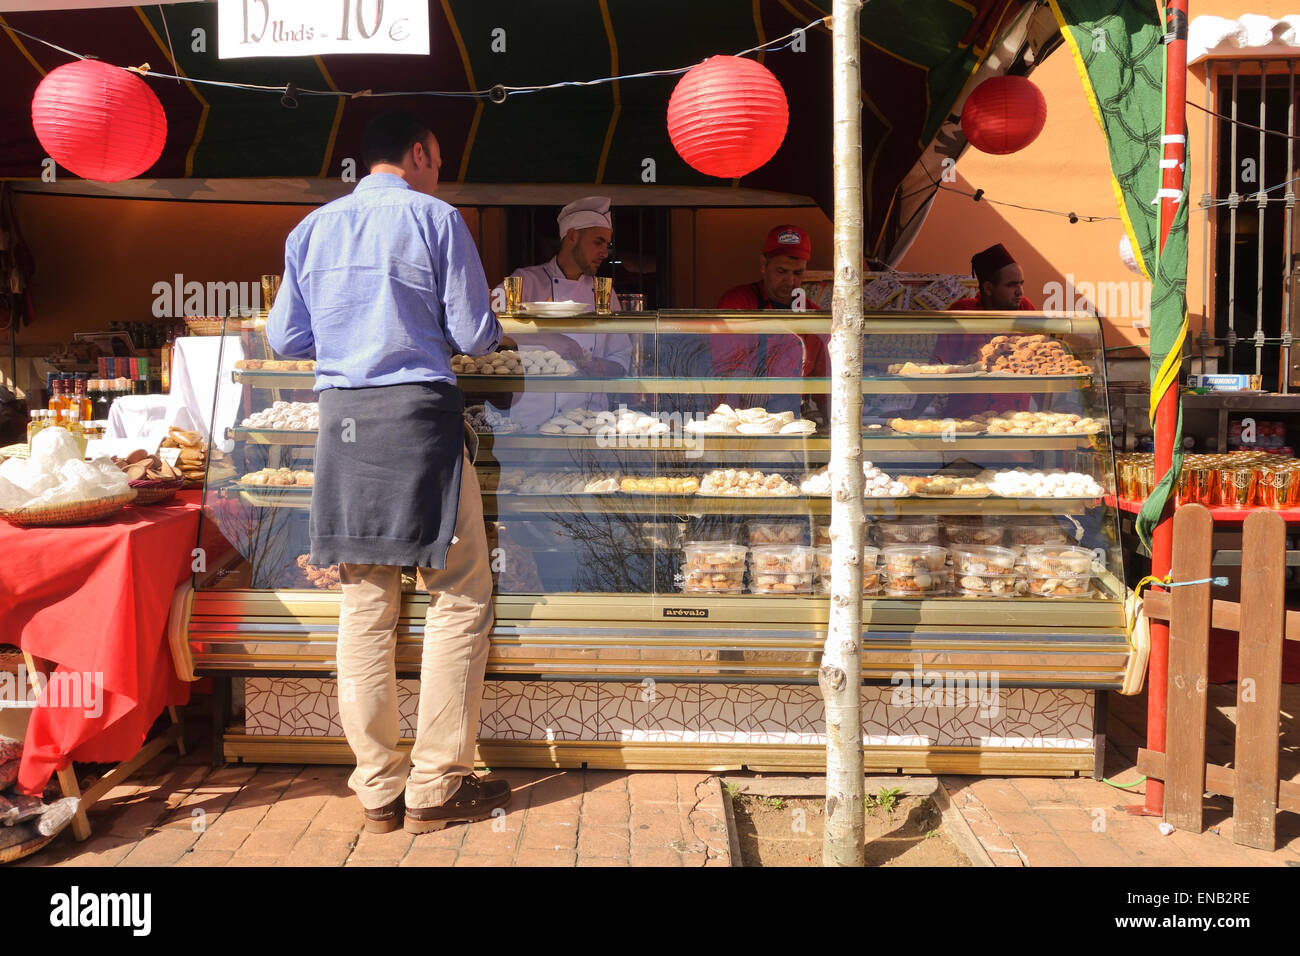 Moroccan food stand at International fair promoting countries culture and products, Fuengirola, Spain. Stock Photo